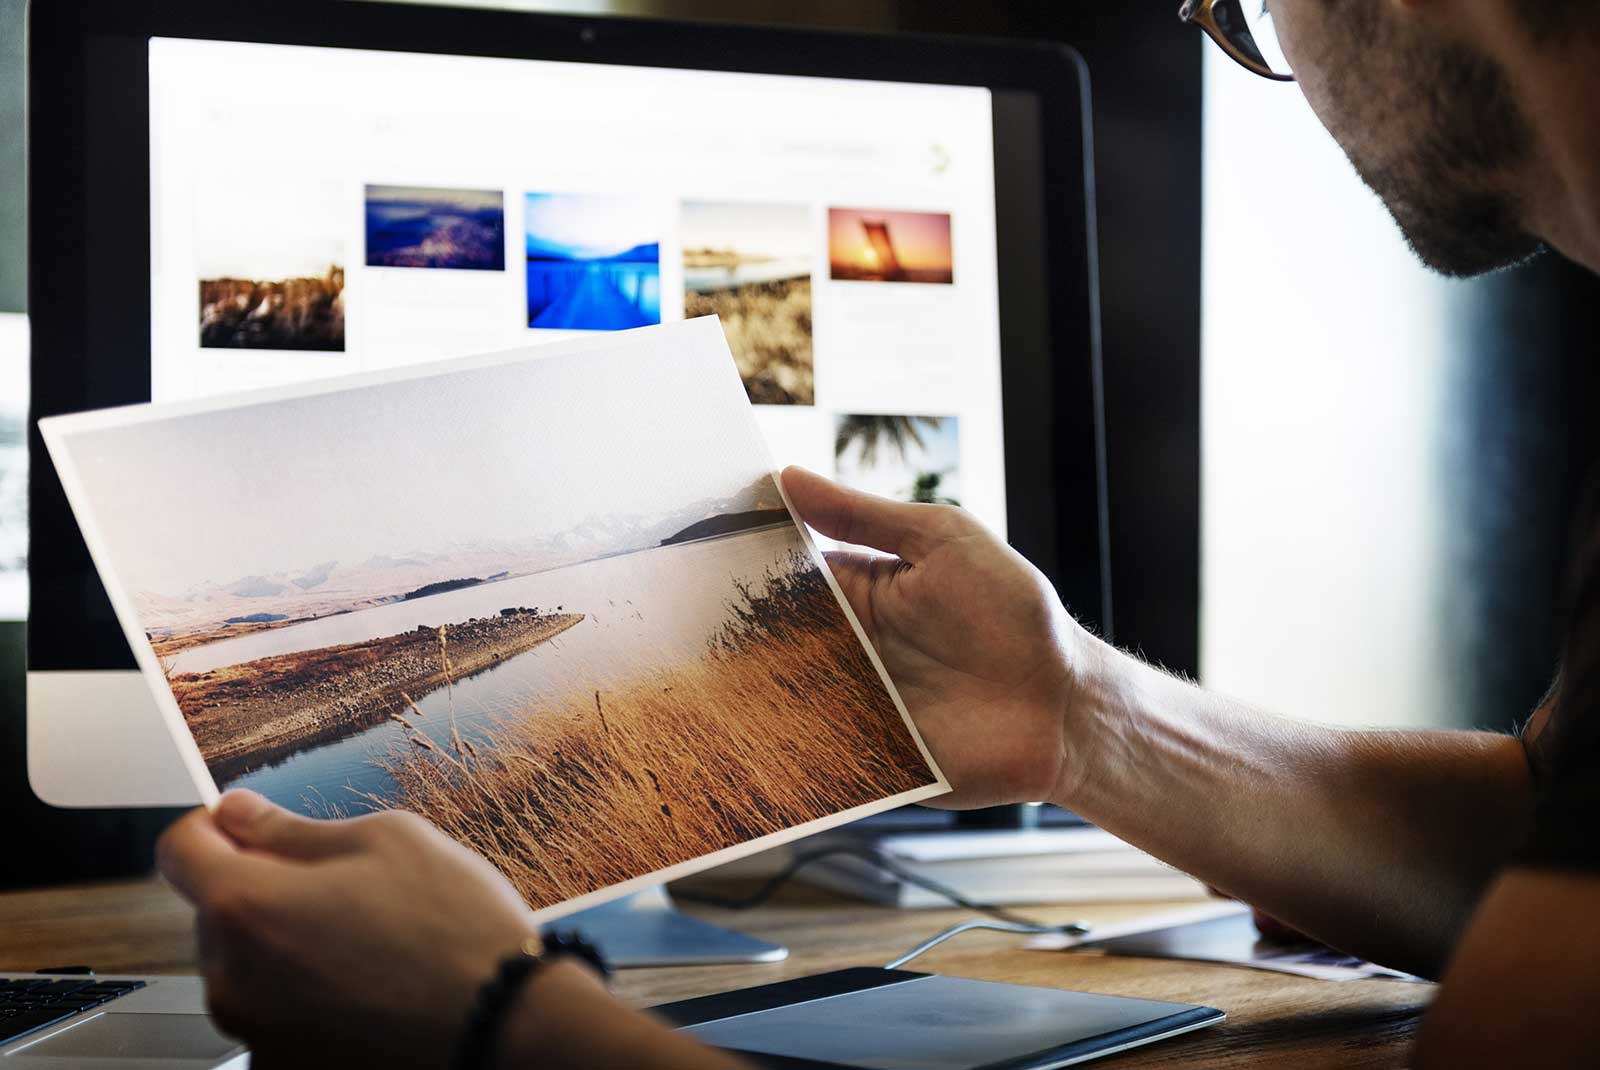 5 Benefits of Outsourcing Image Post Production Work 2